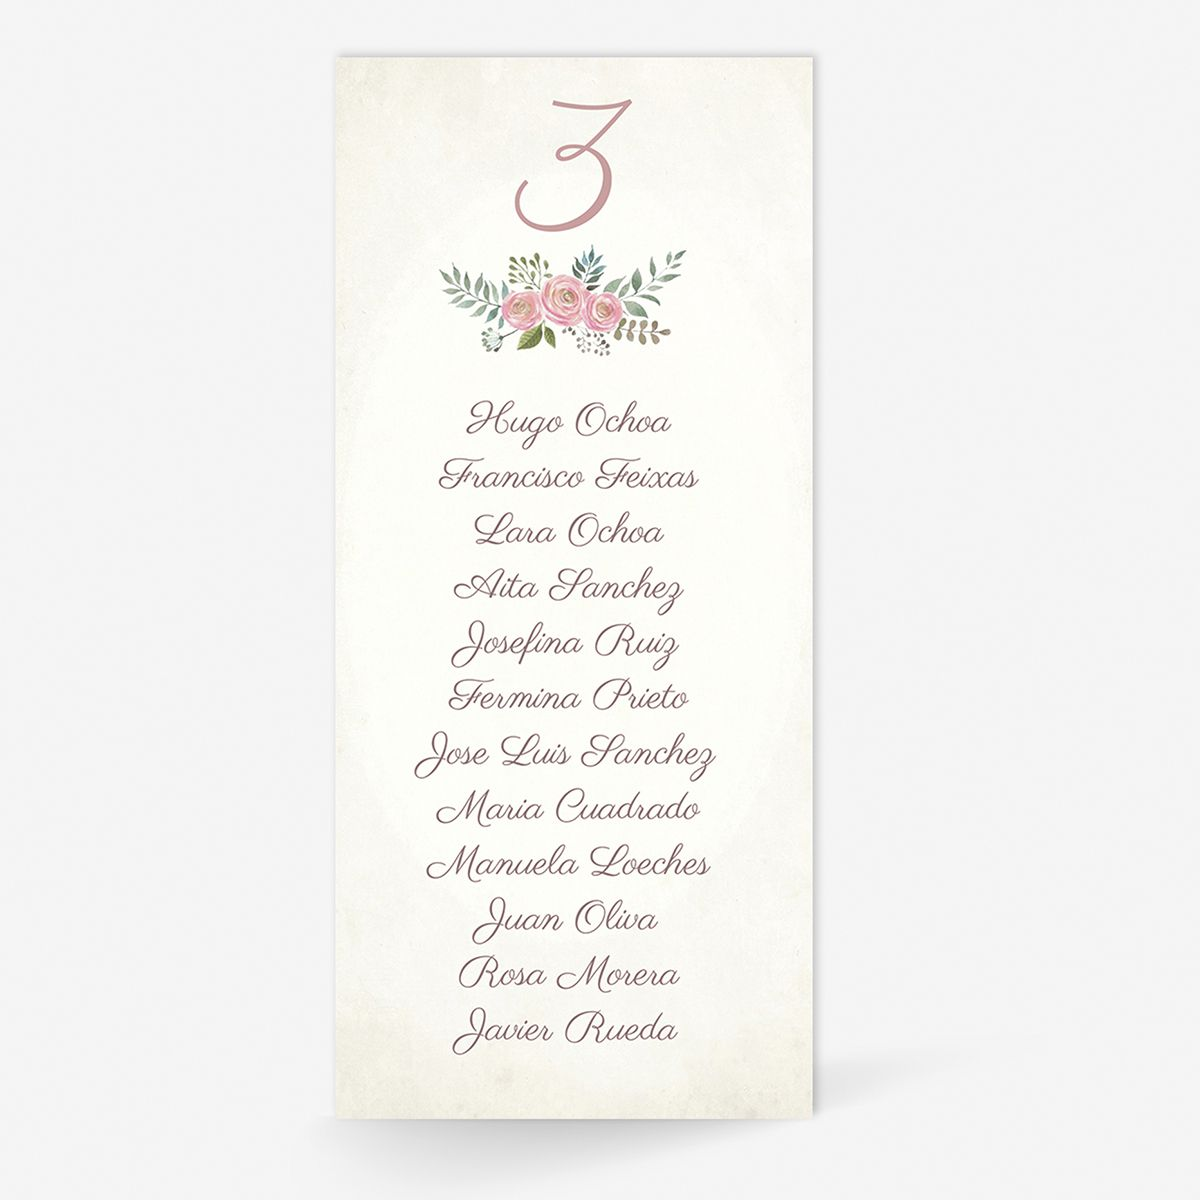 Plan de mesa (Seating plan) boda Serena Vintage